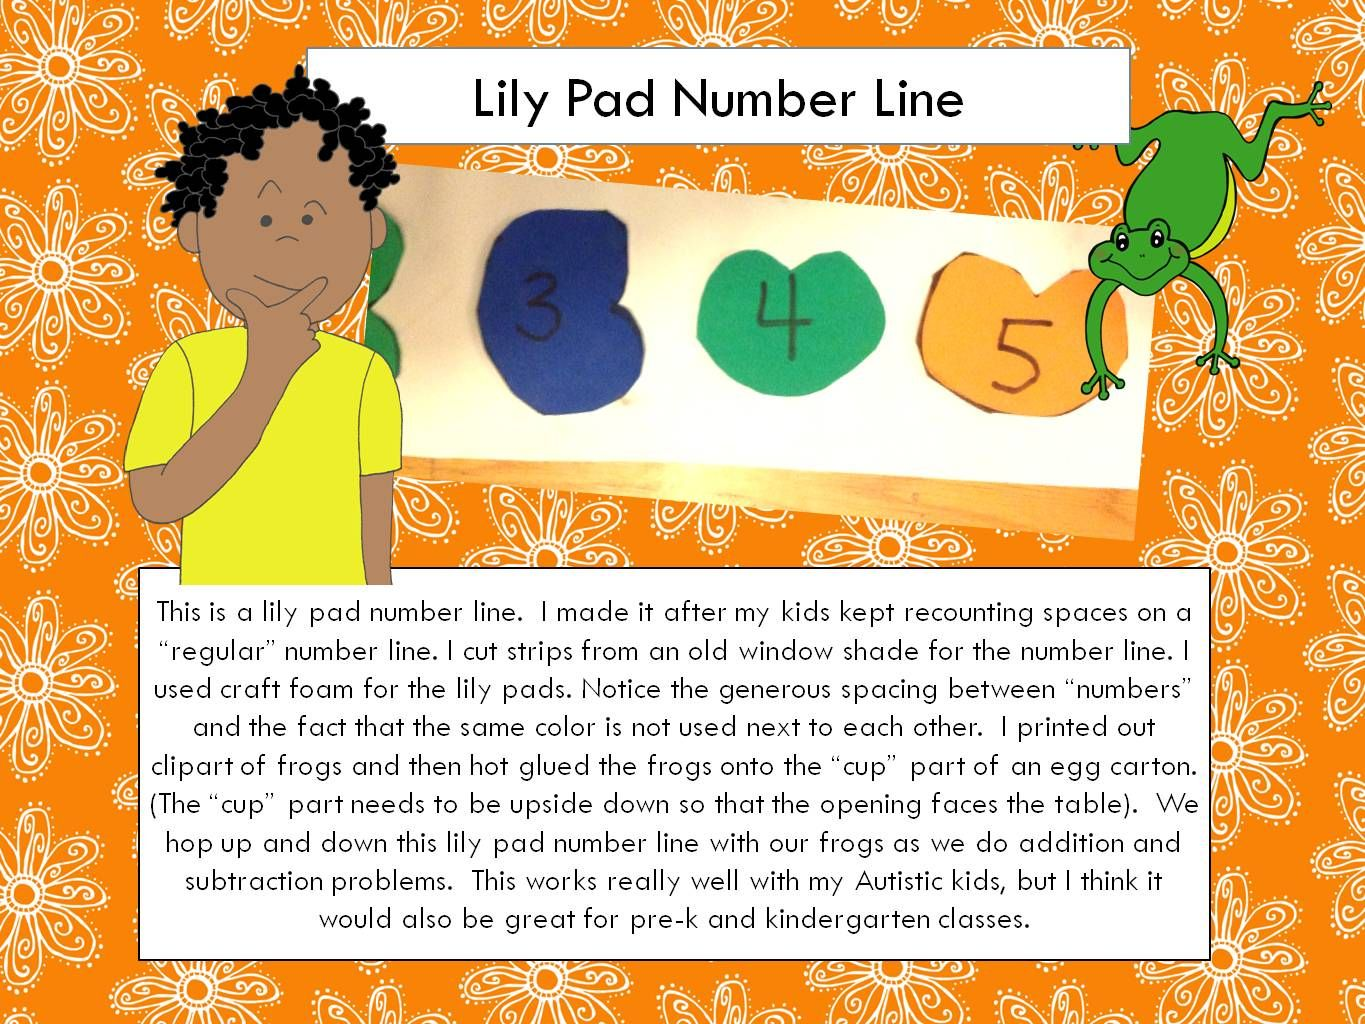 Lily Pad Number Line